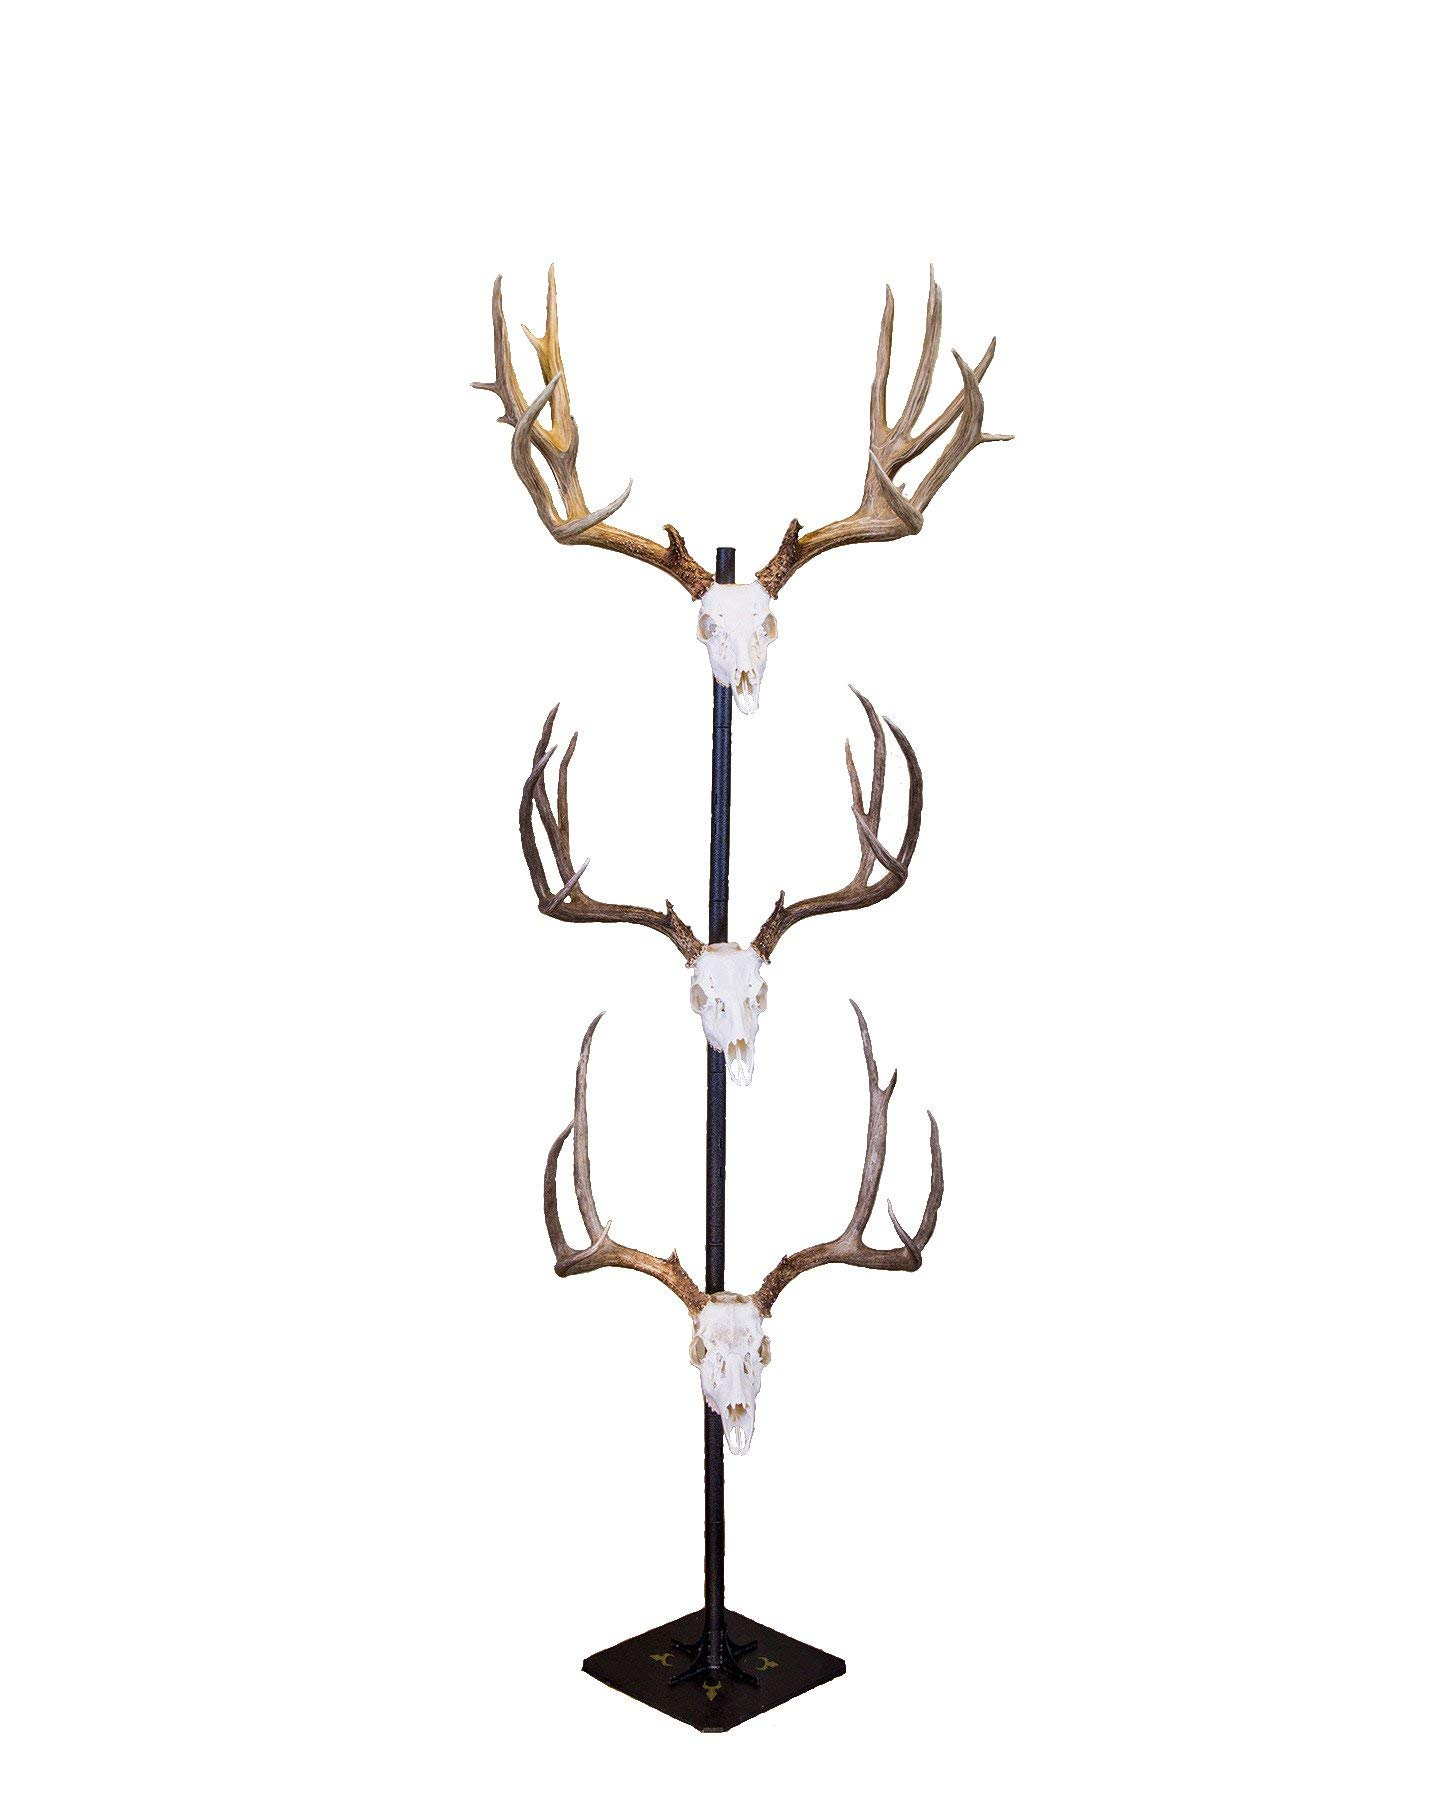 Skull Hooker Trophy Tree European Trophy Mount - Hang up to 5 Taxidermy Deer Antlers and other Skulls for Display - Graphite Black by Skull Hooker (Image #1)